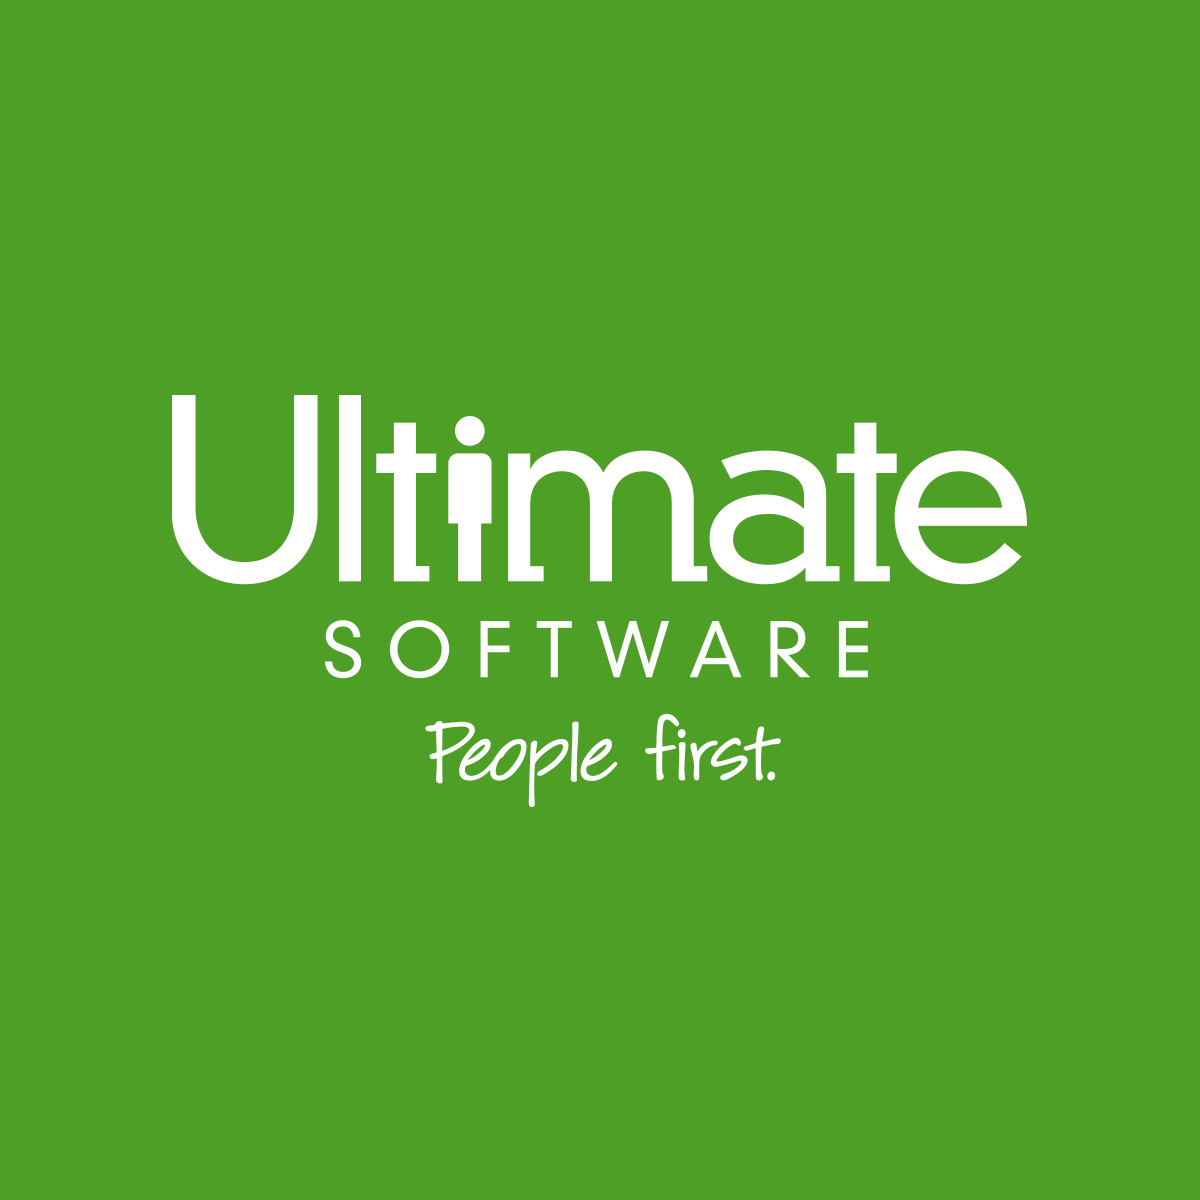 ultimate_software.jpg